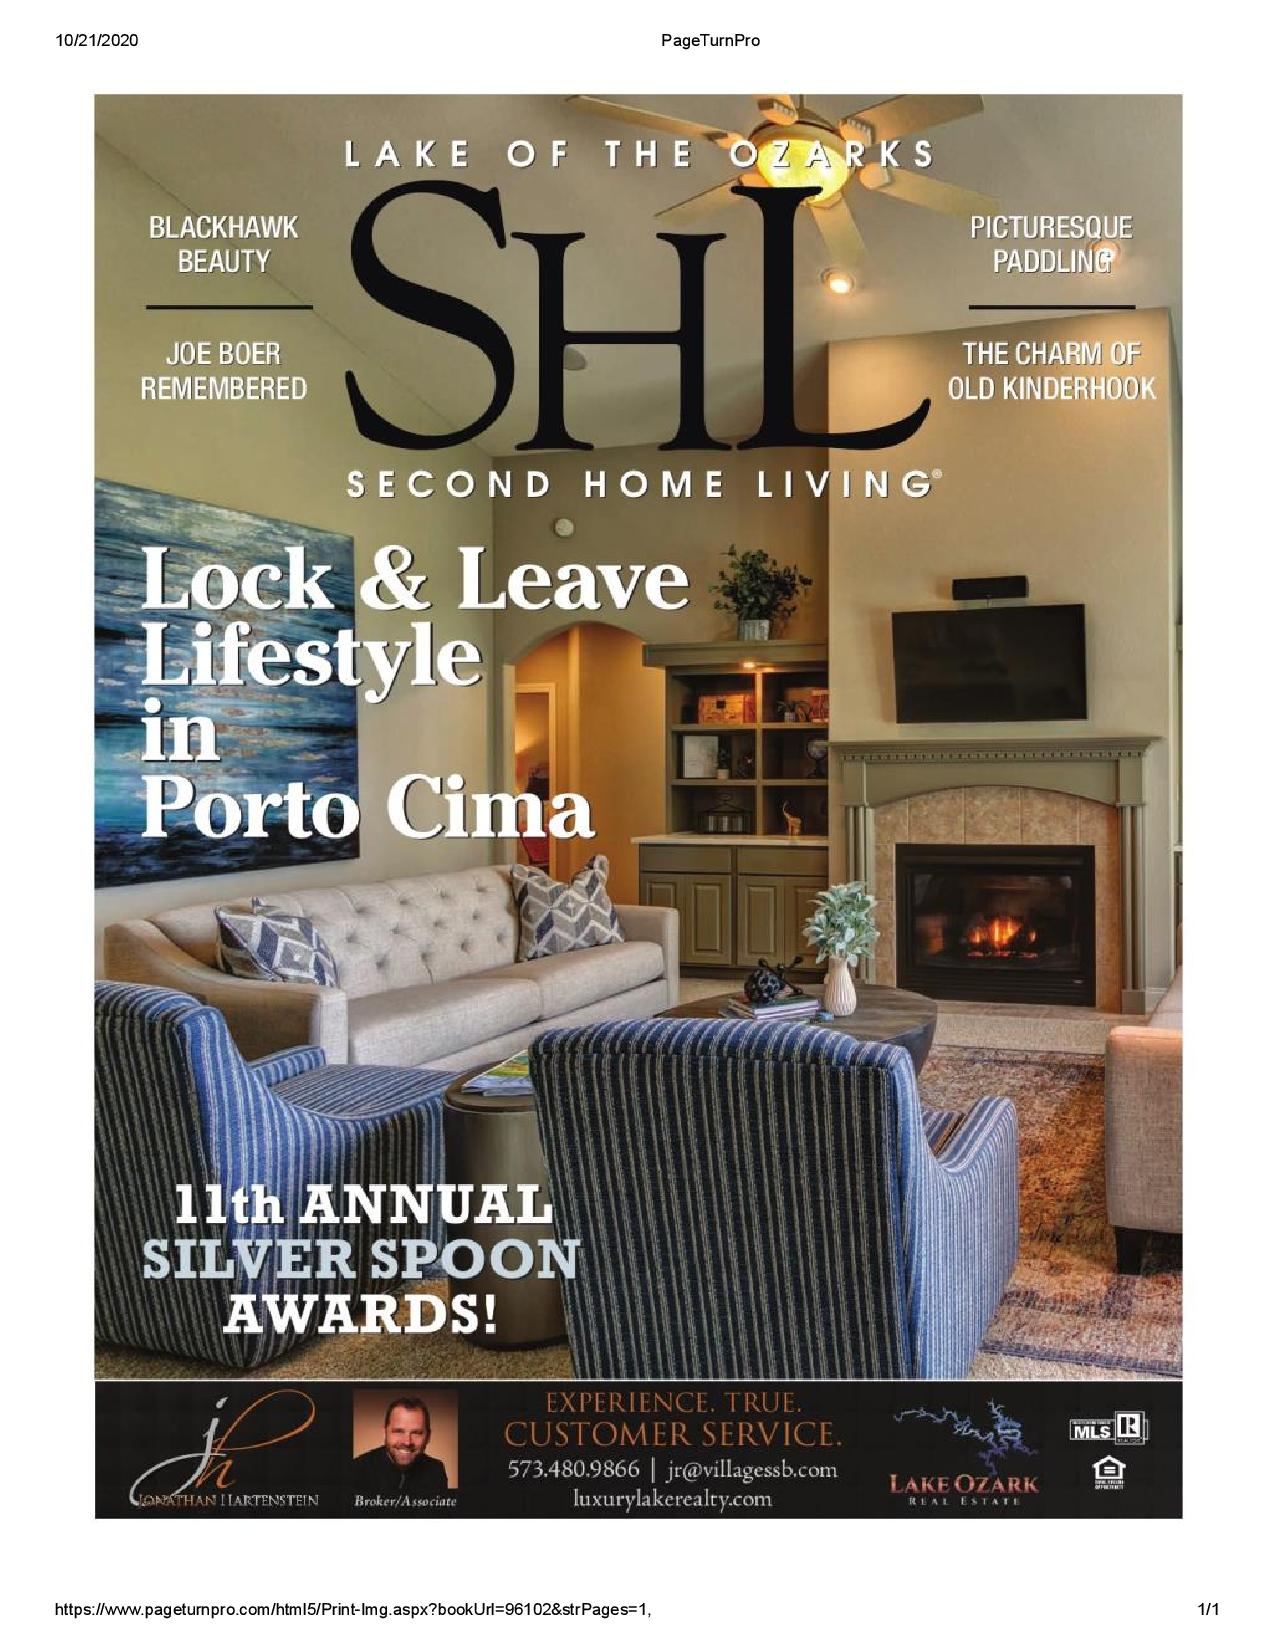 Second Home Living Magazine at Lake of the Ozarks